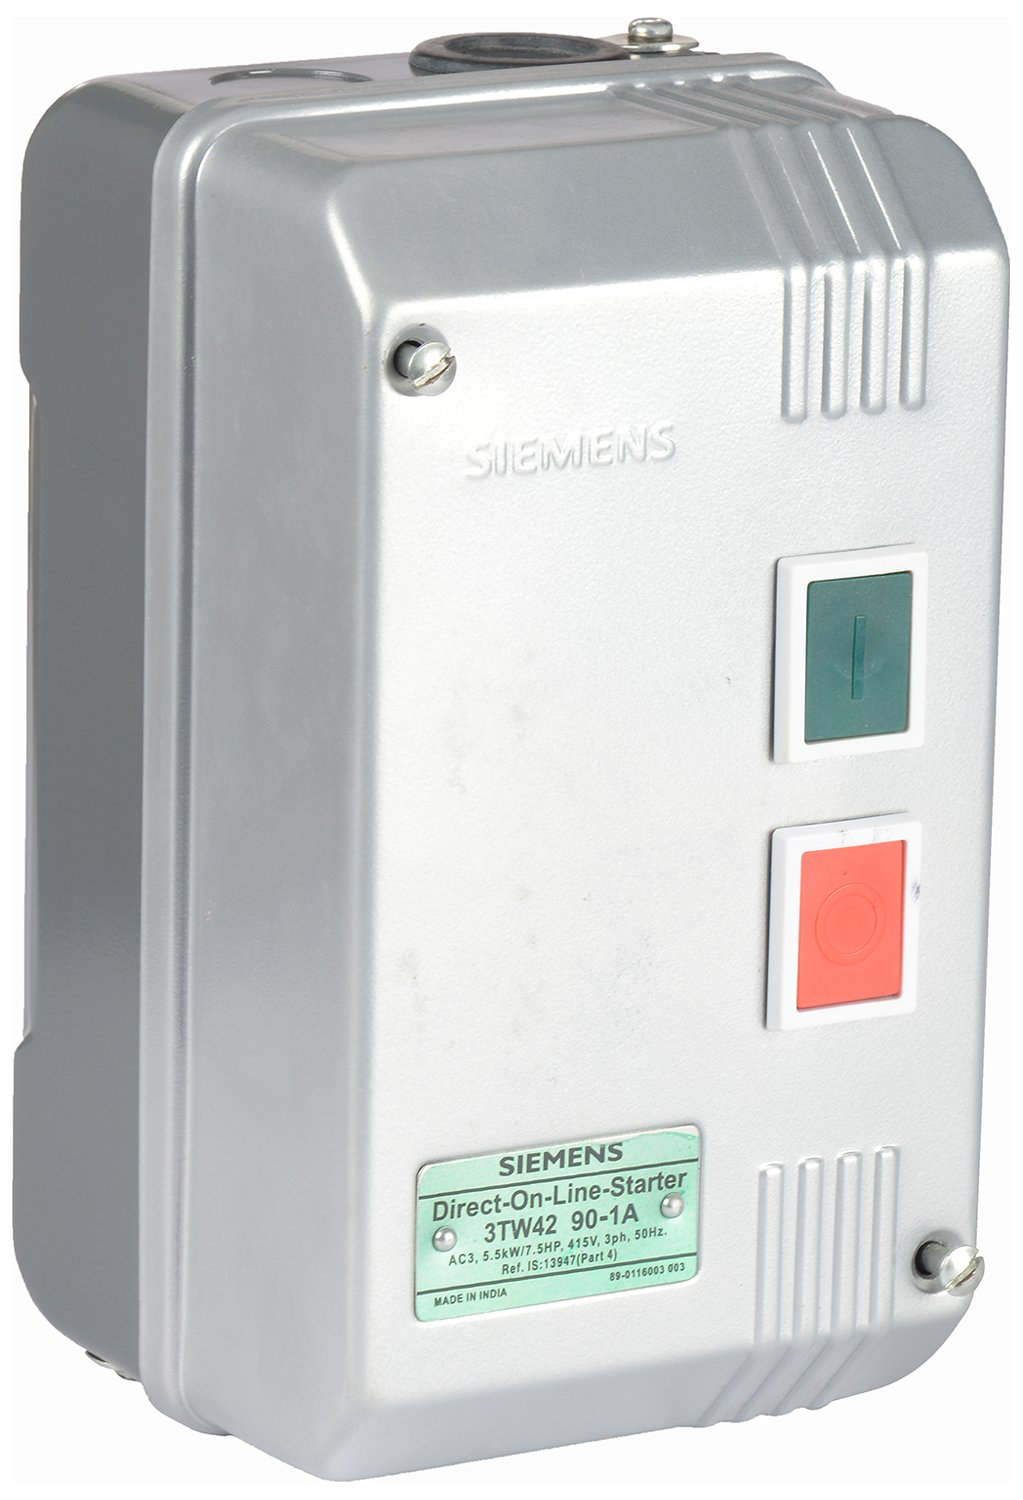 Buy Siemens Plastic Direct On Line Starter White And Black Online Star Delta 3phase Motor Automatic With Timer At Low Prices In India